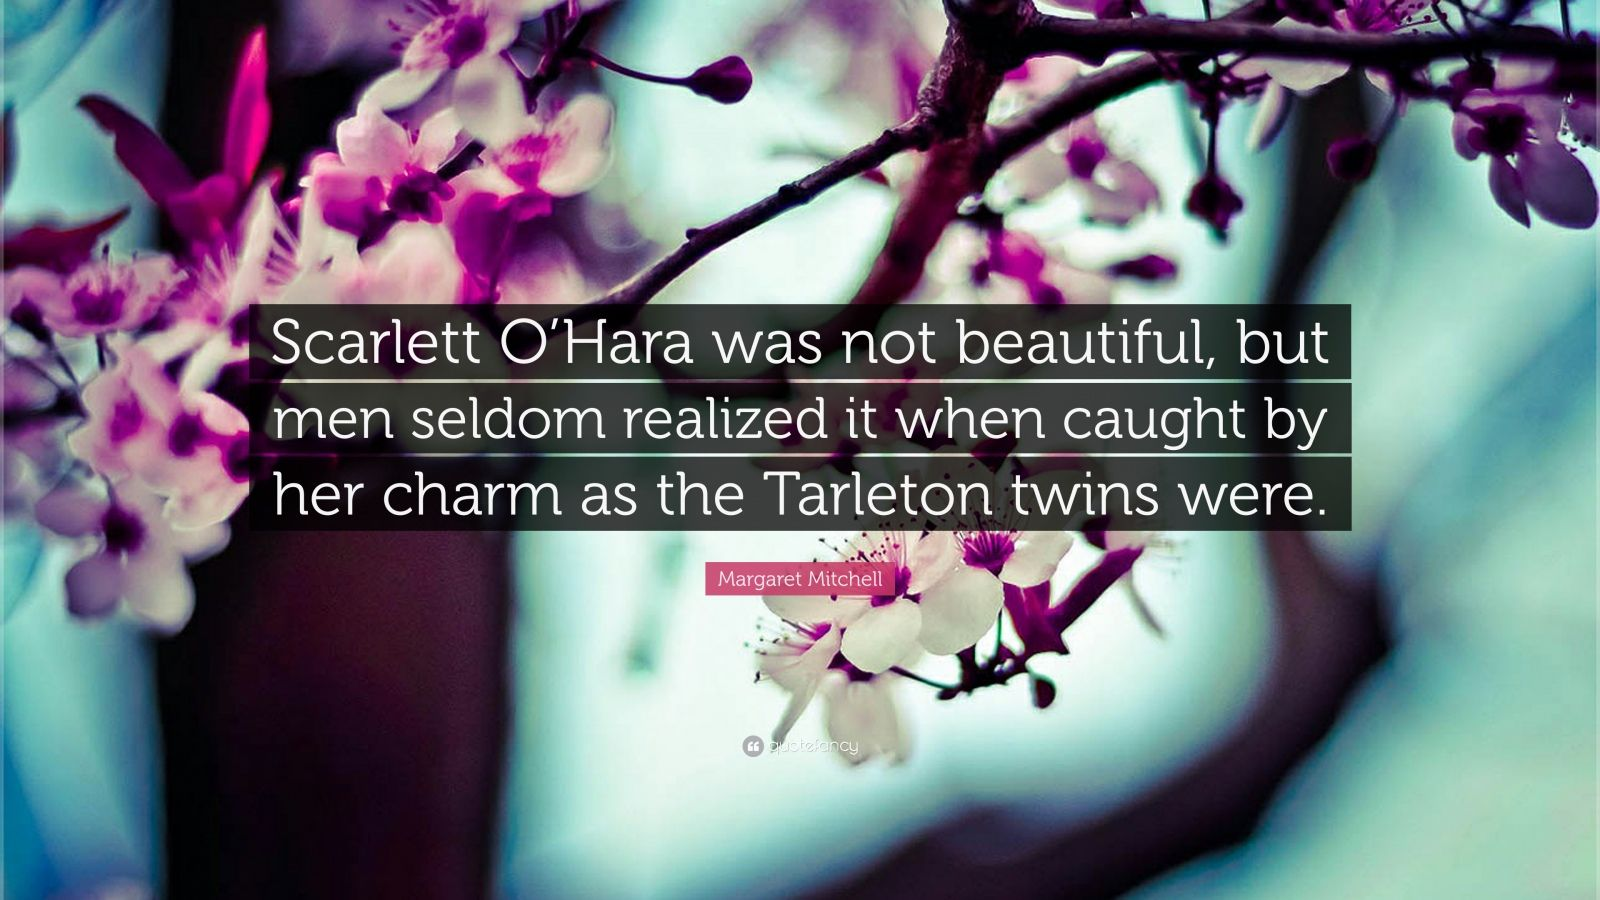 """Margaret Mitchell Quote: """"Scarlett O'Hara was not beautiful, but men seldom realized it when caught by her charm as the Tarleton twins were."""""""